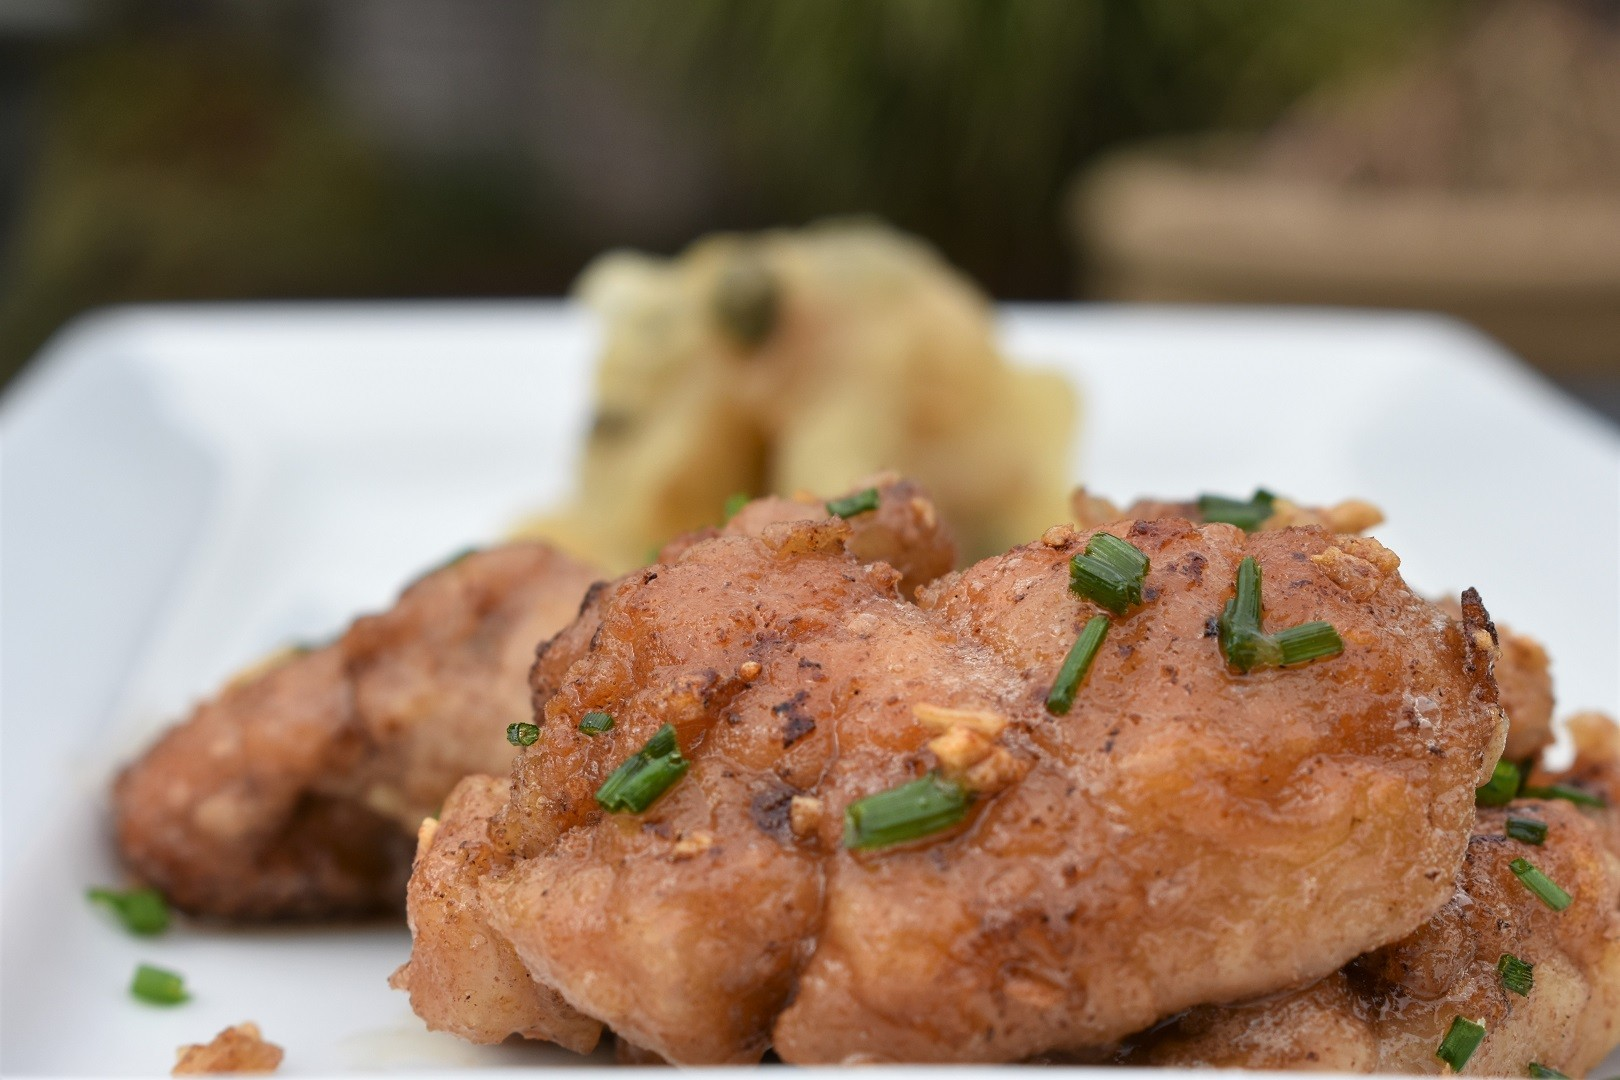 Chicken sweetbreads recipe in spicy sauce